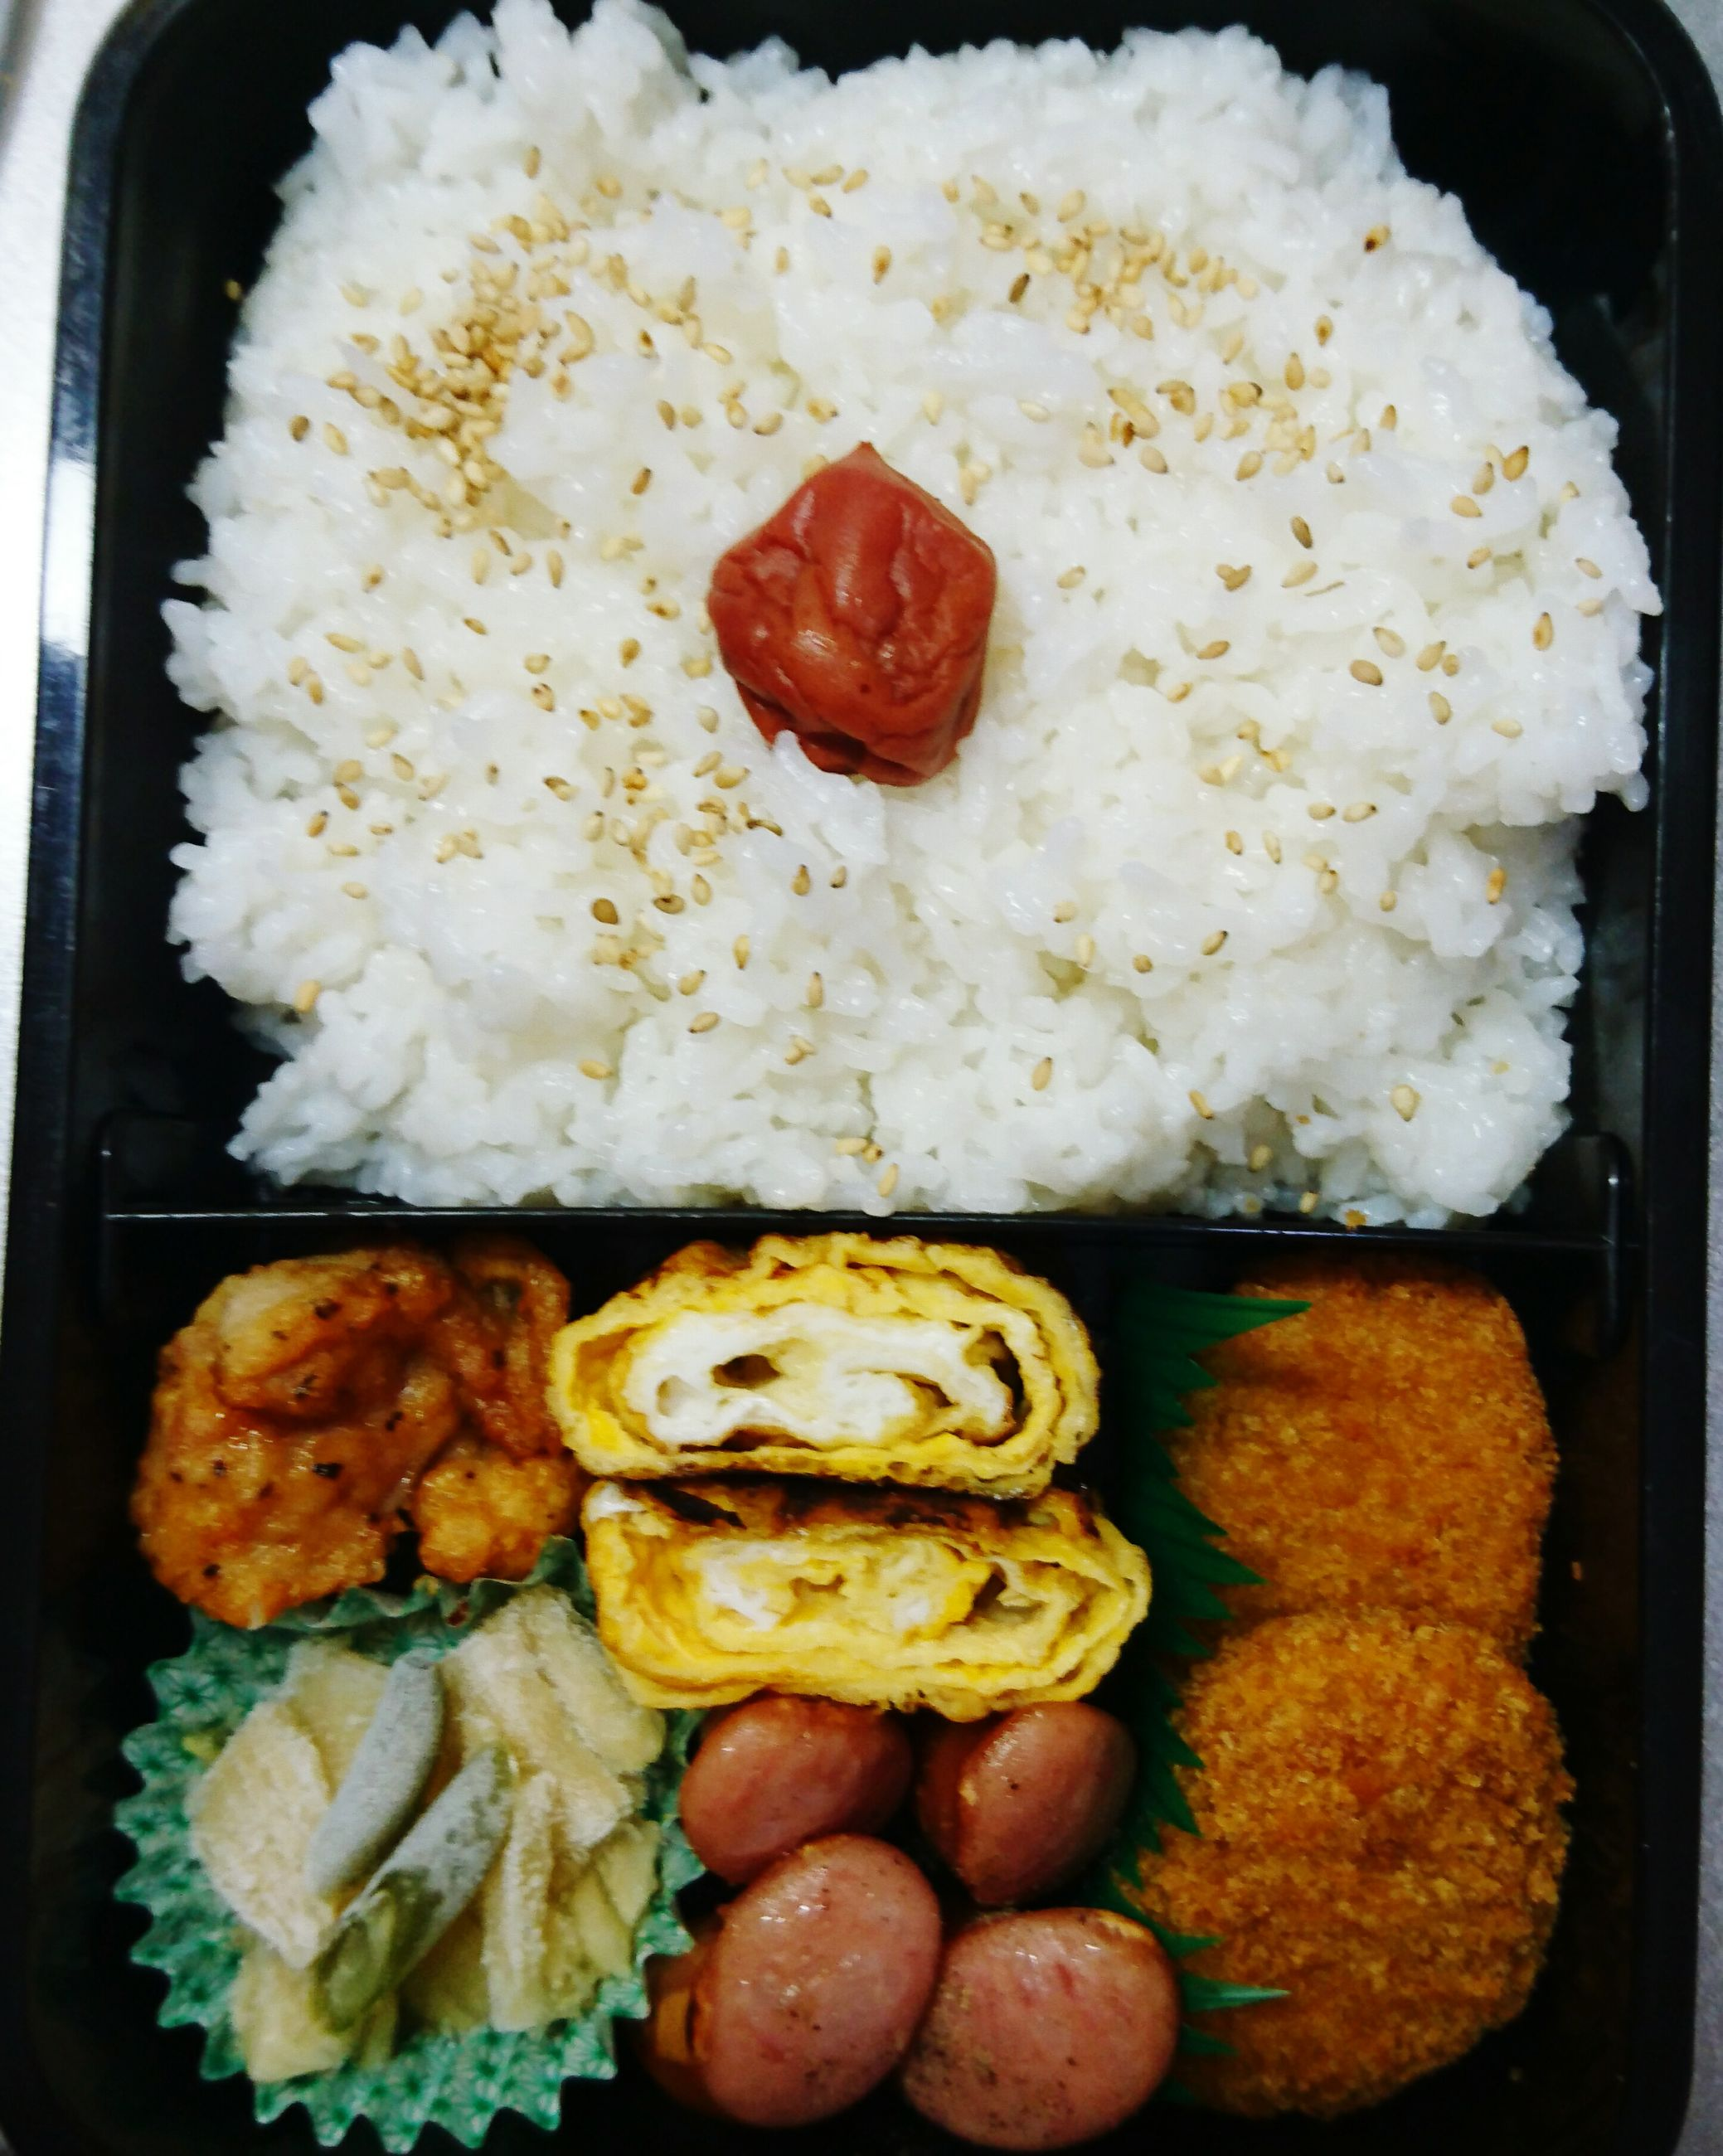 food and drink, food, freshness, rice - food staple, indoors, no people, ready-to-eat, close-up, directly above, healthy eating, day